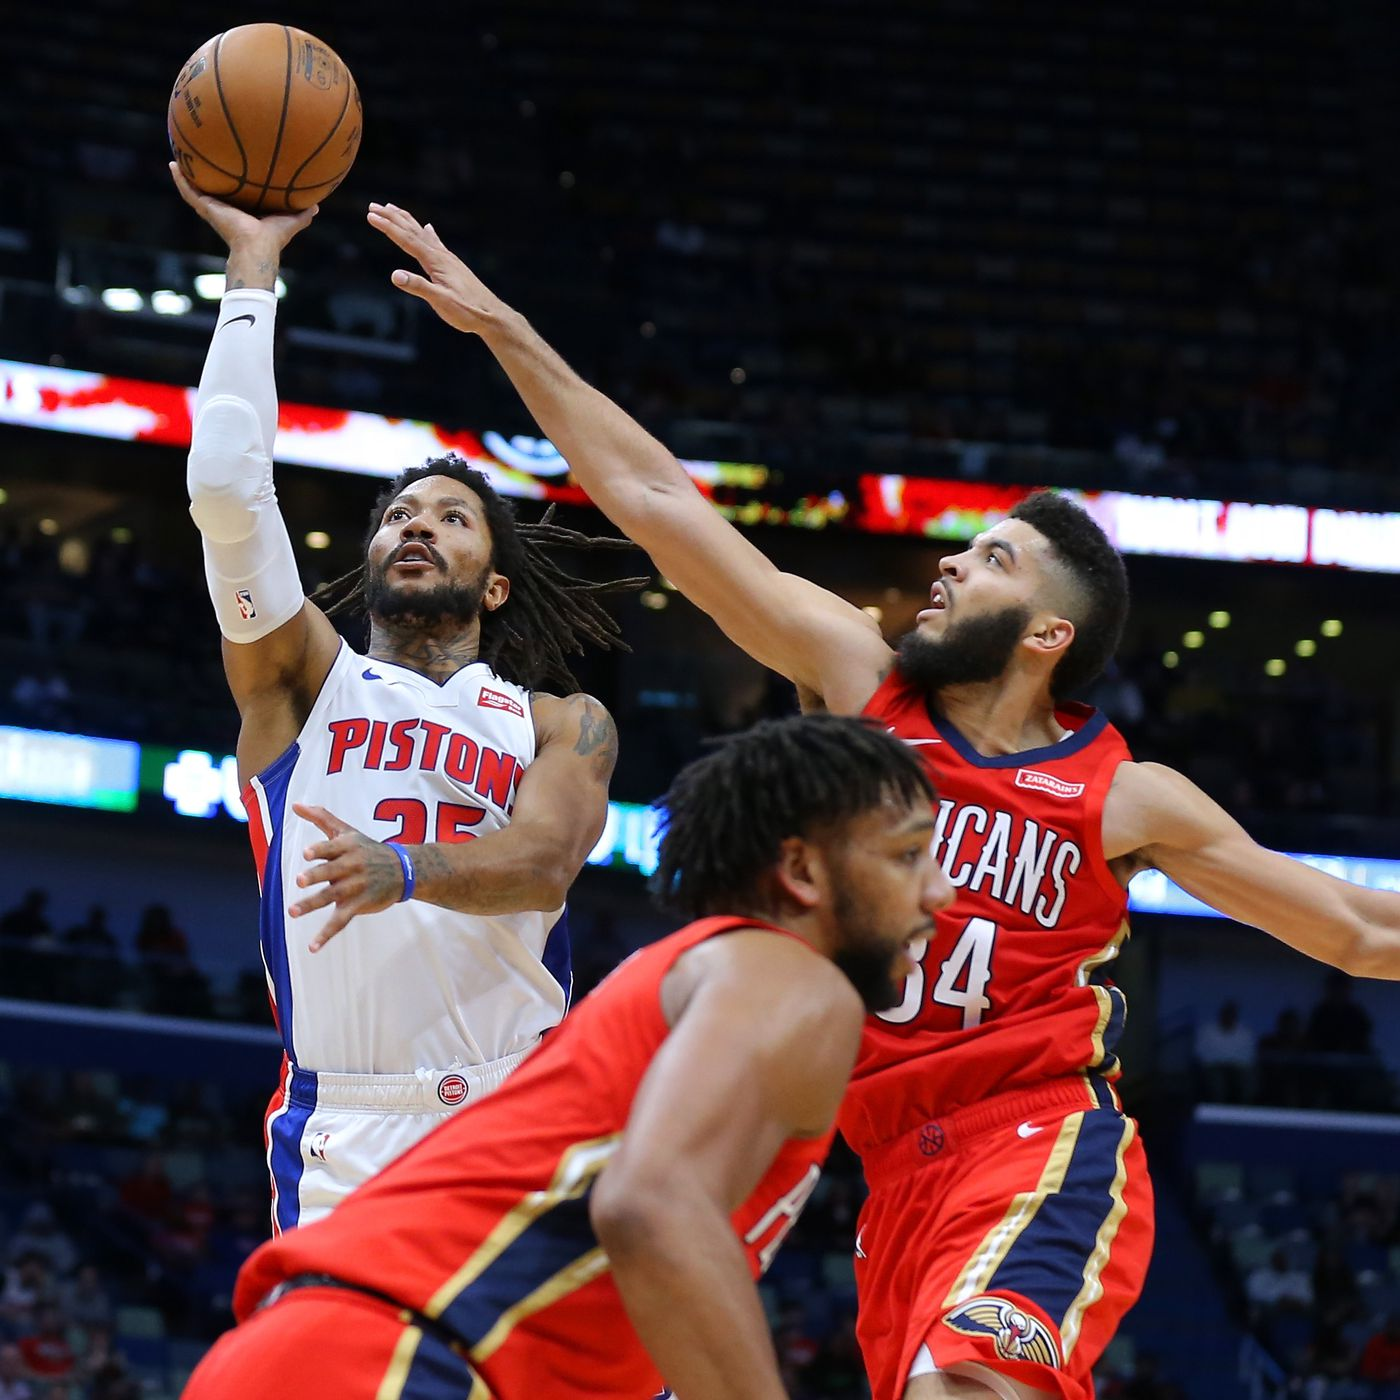 Pistons Pelicans Game Winner Makes Sad New Orleans Announcer Give Up Sbnation Com